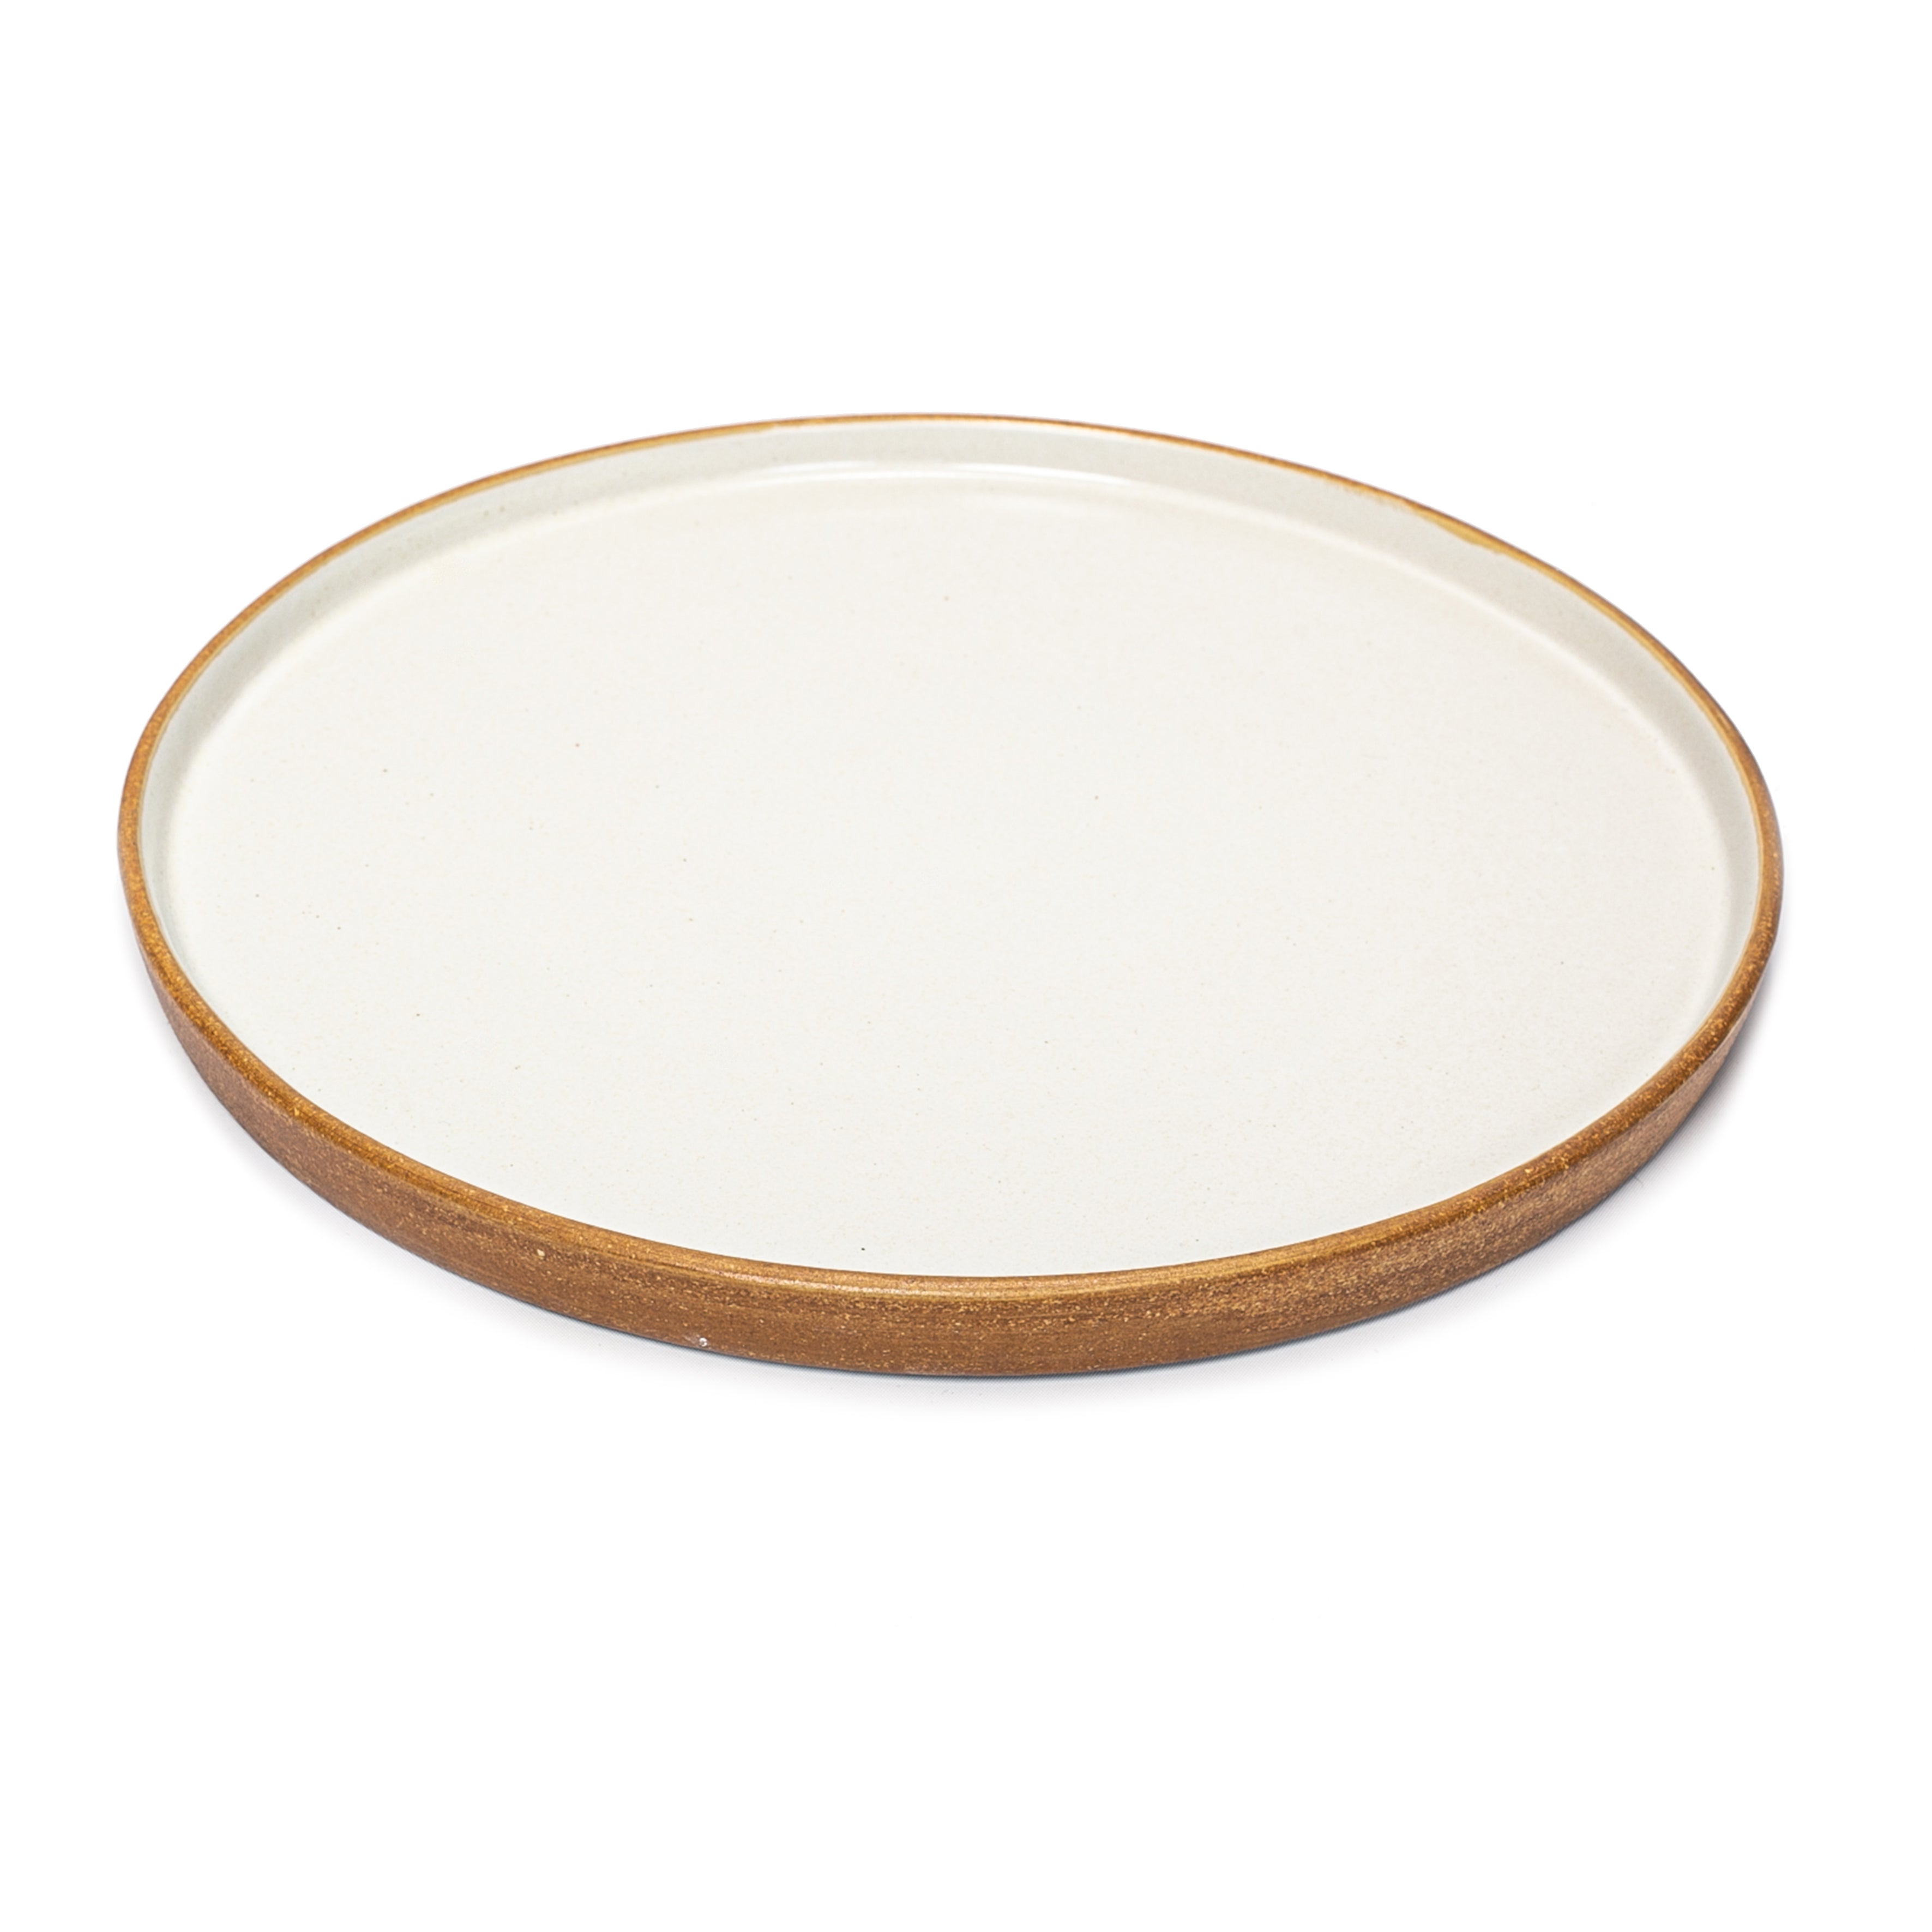 Matte White With Rye Edge Large Flat Plate  30cm Dia